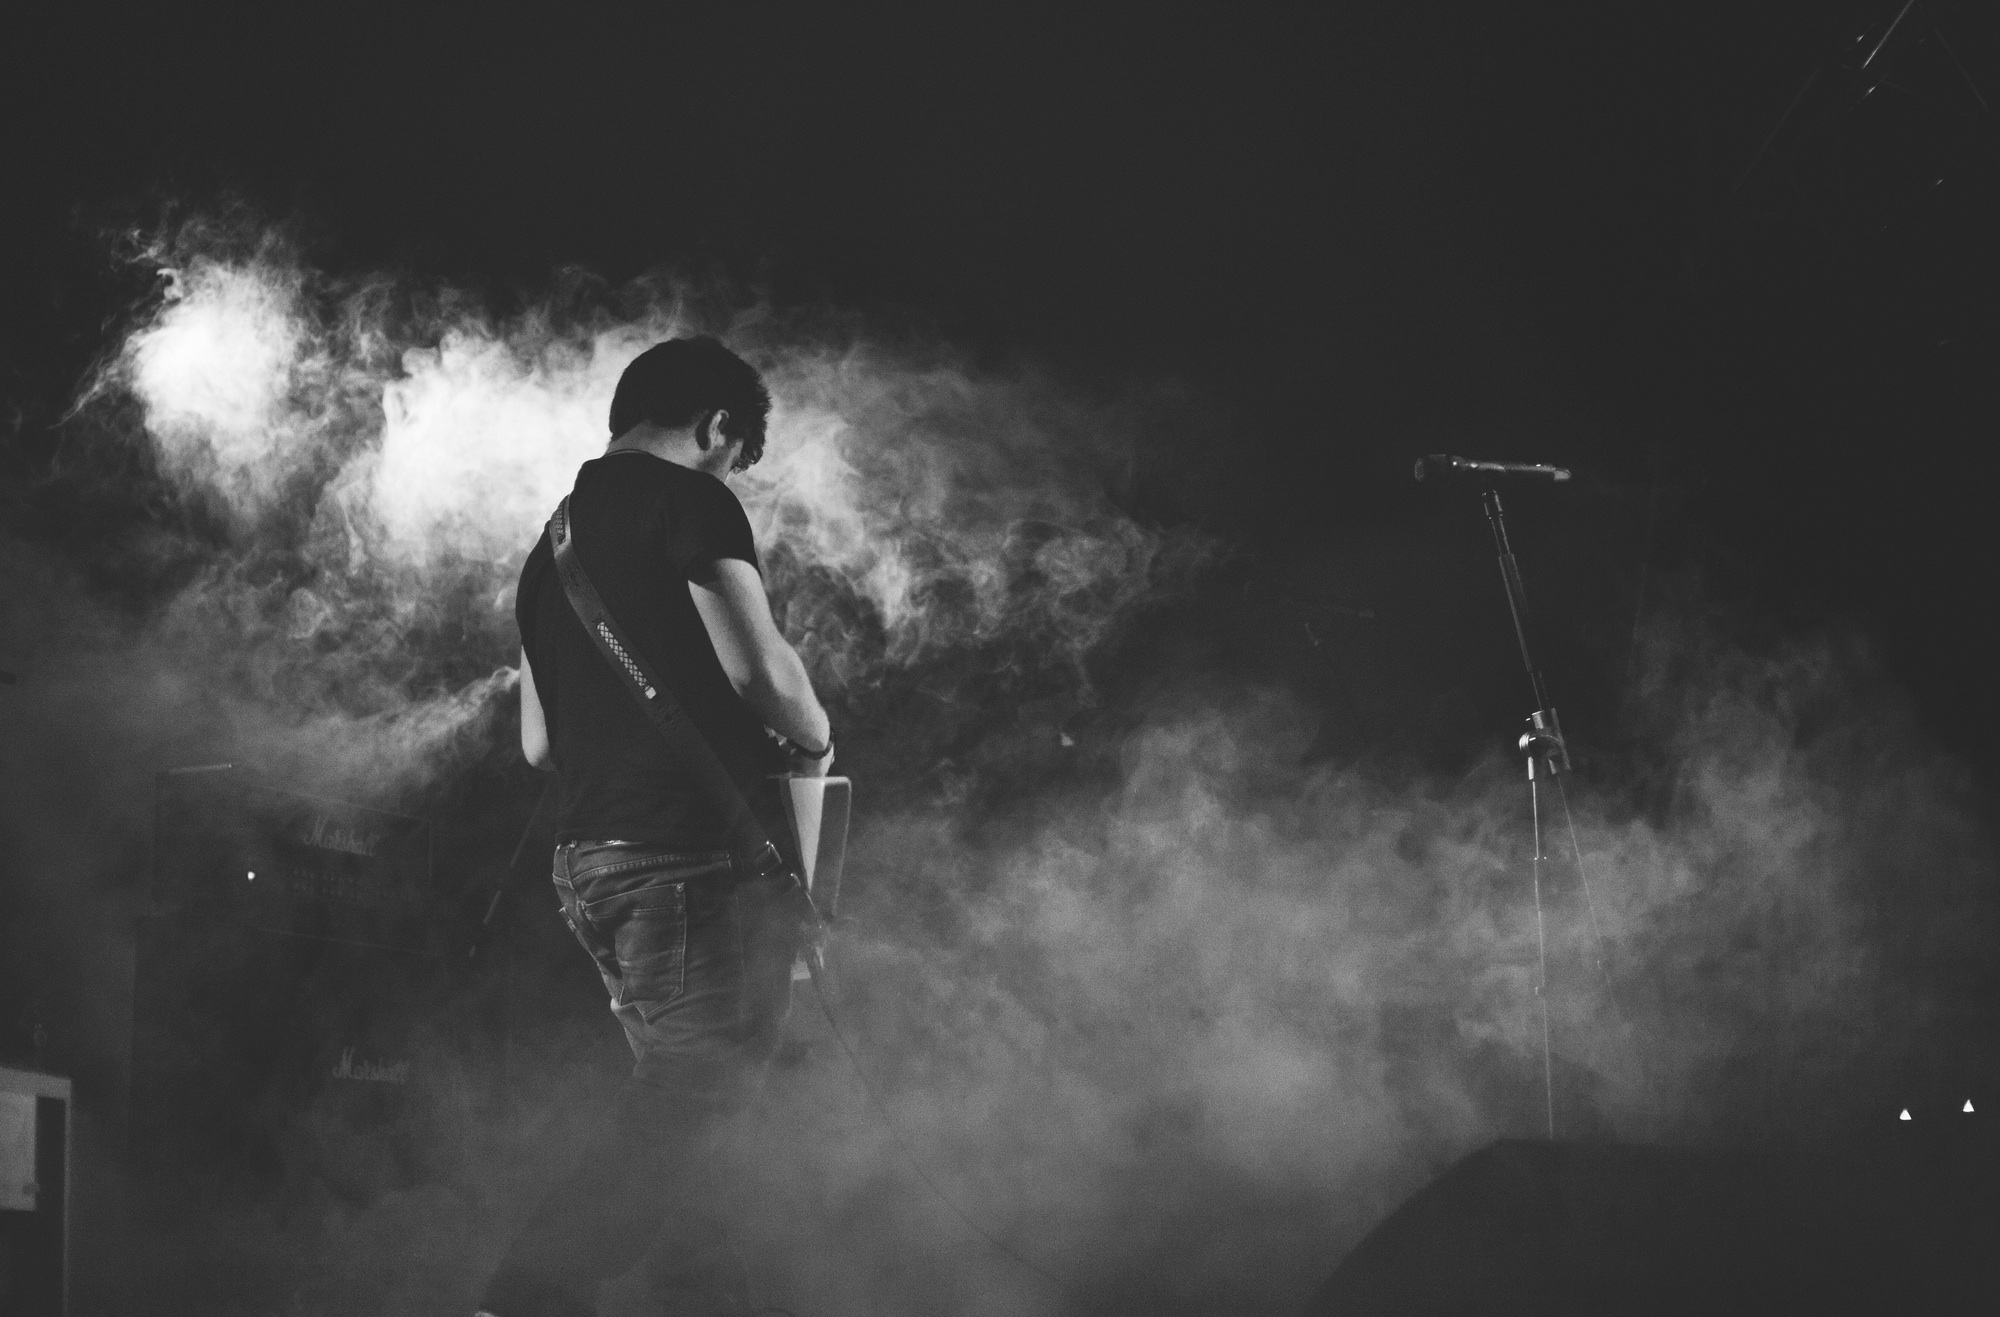 boss-fight-free-high-quality-stock-images-photos-photography-smoke-mist-musician-music.jpg